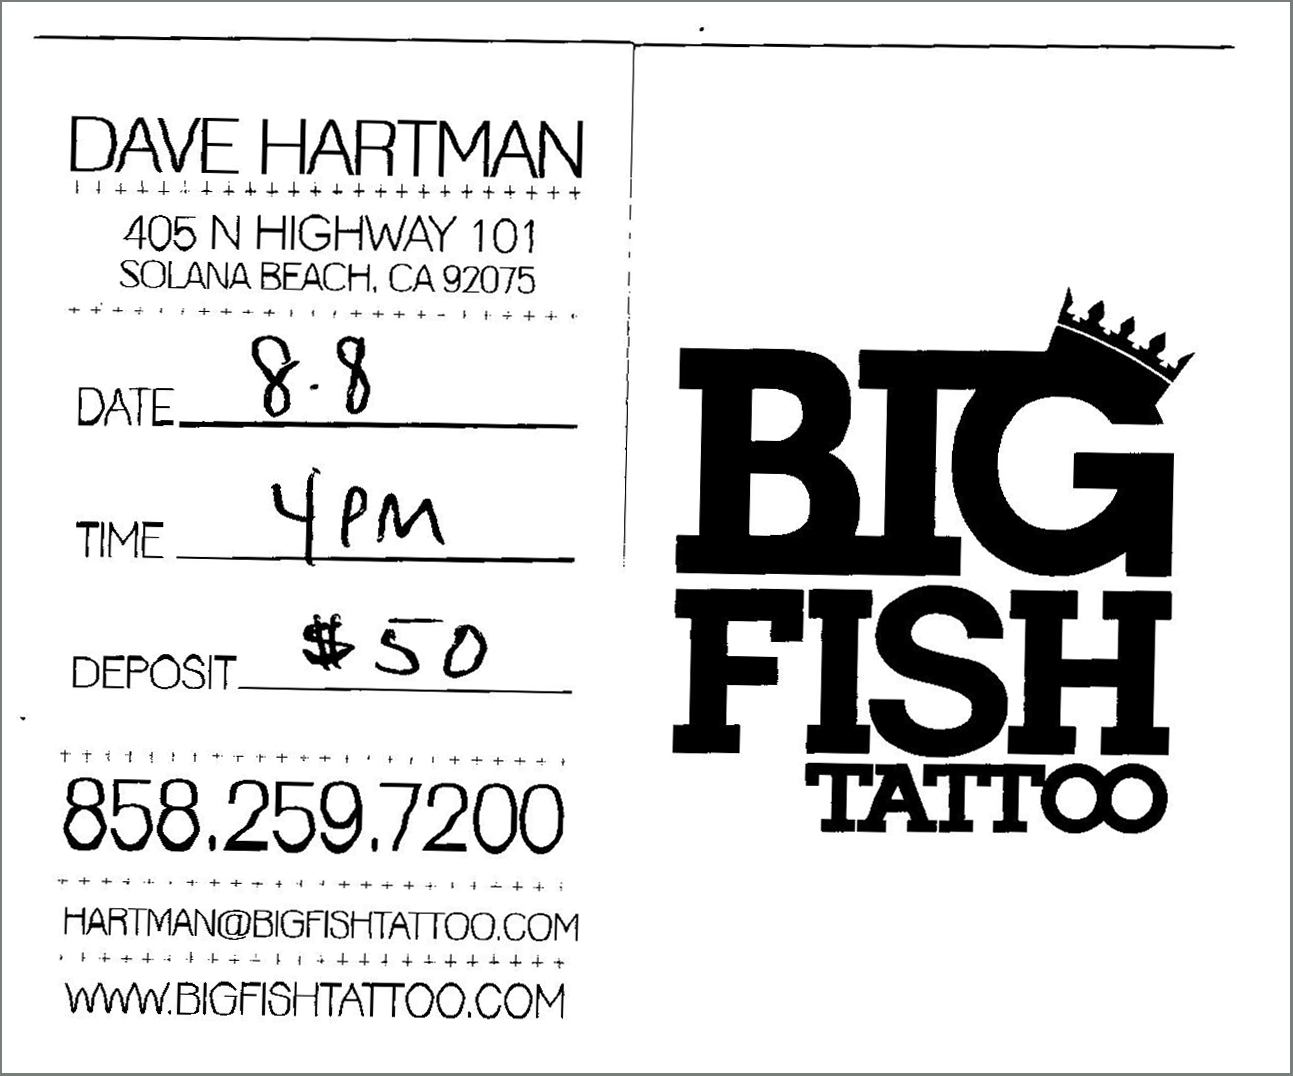 Big Fish Tattoo - Dave Hartman